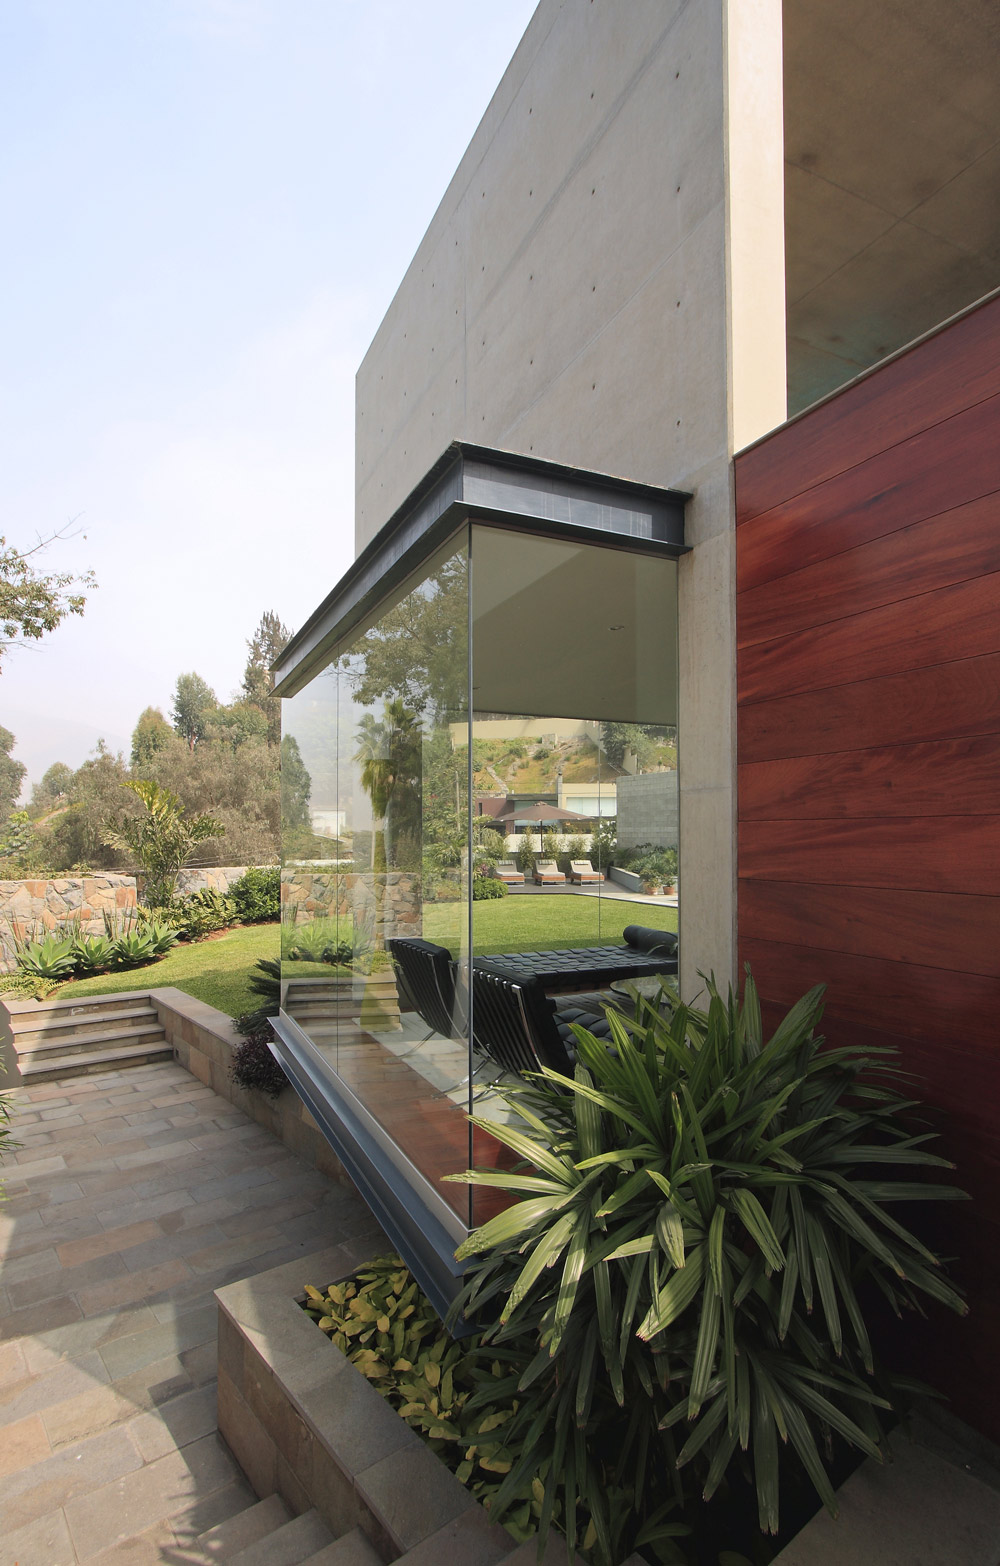 Concrete & Wood Walls, Large Windows, Family Home in Lima, Peru